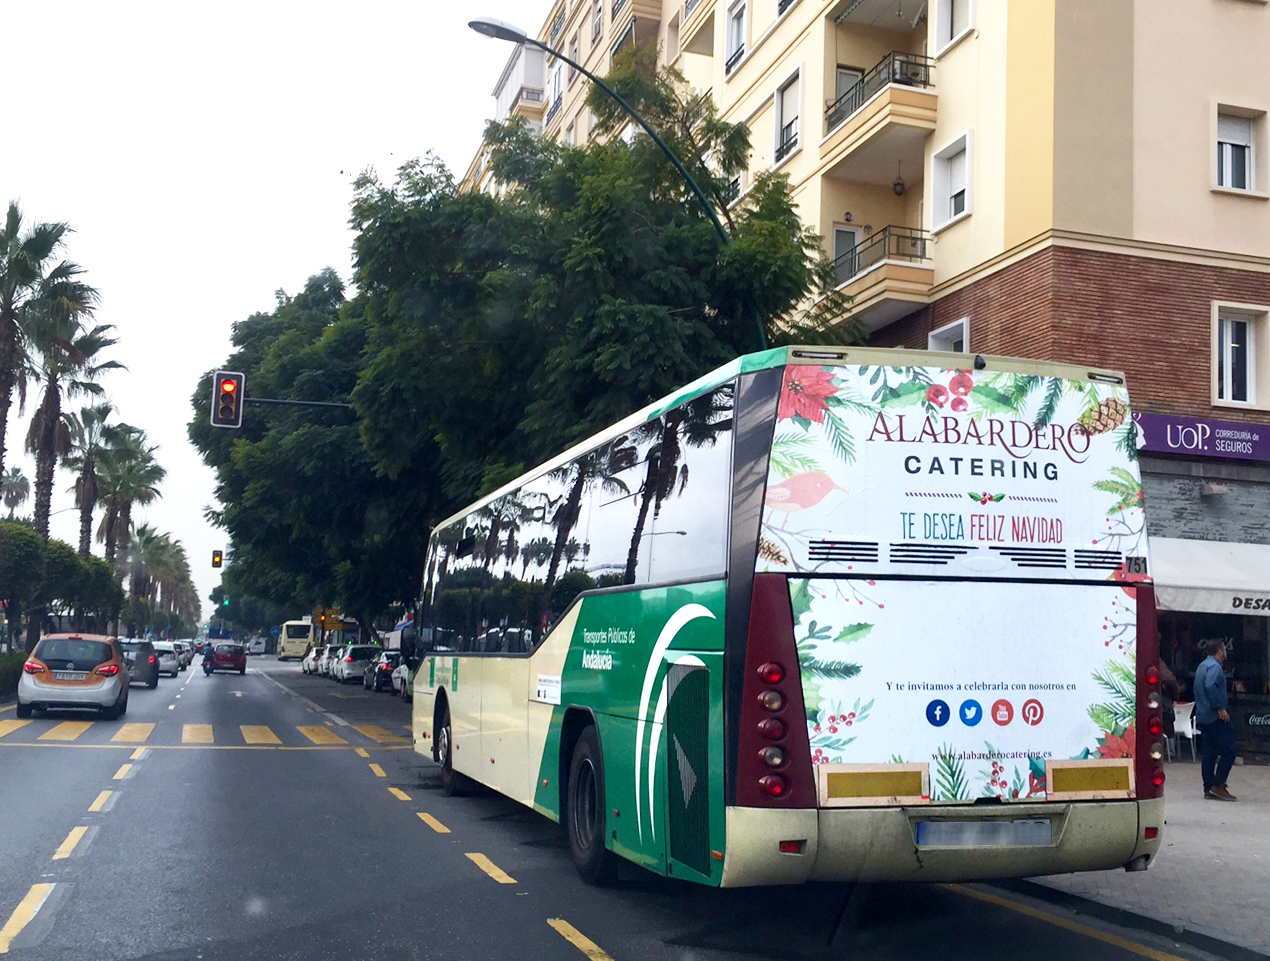 Outdoor advertising campaign in buses for Alabardero Catering